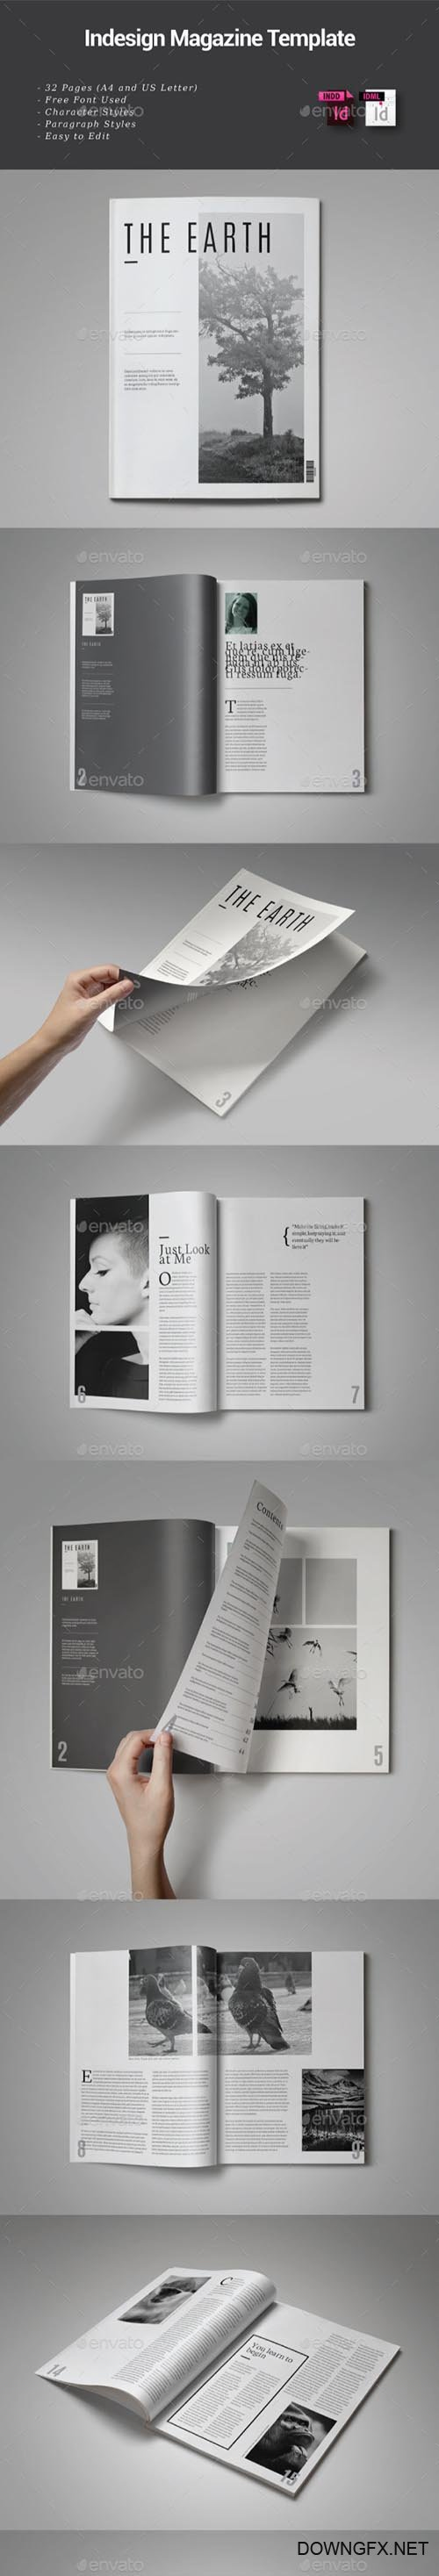 32 Pages Indesign Magazine Template 9112619